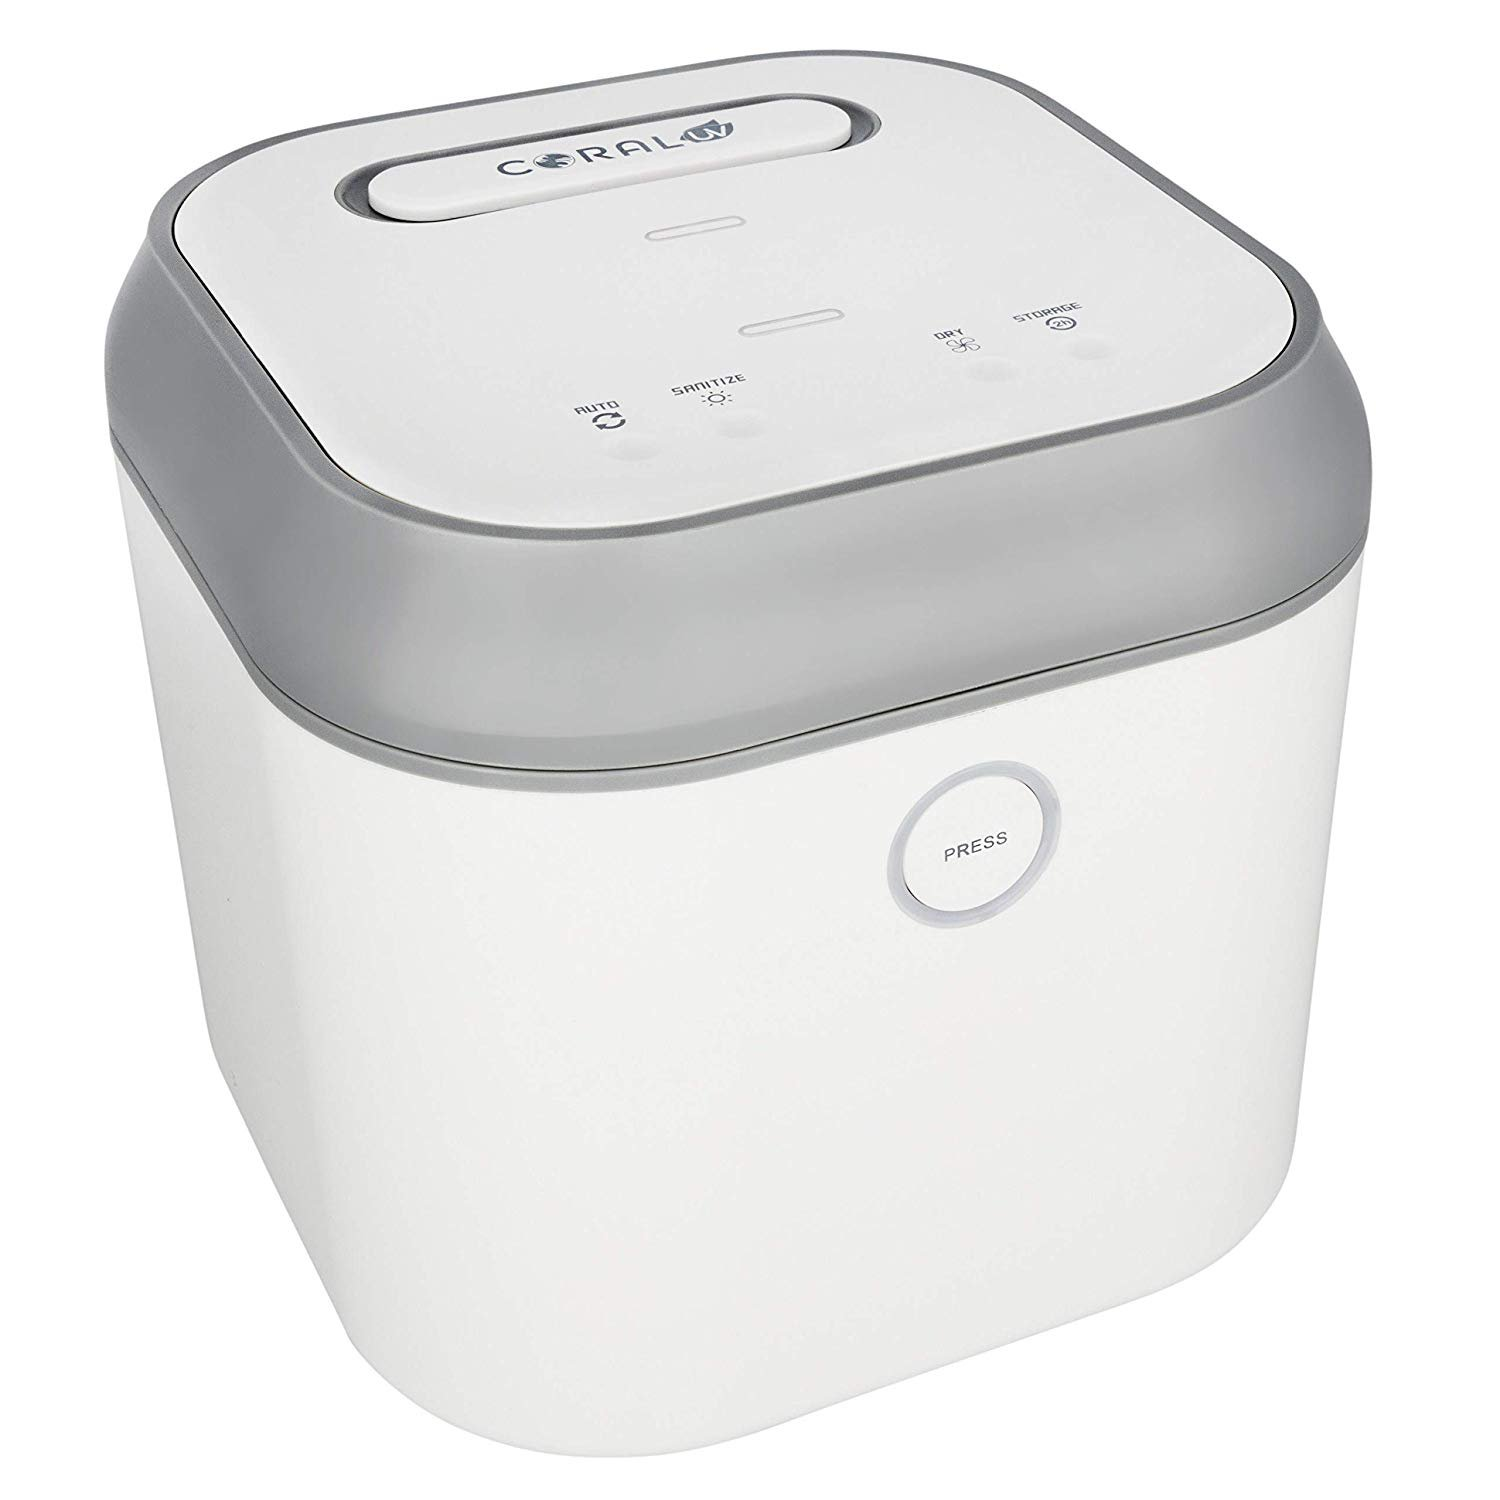 The Coral UV Sanitizer and Dryer. Coral UV provides an effective, safe, and chemical-free method of sanitization for you and your family.